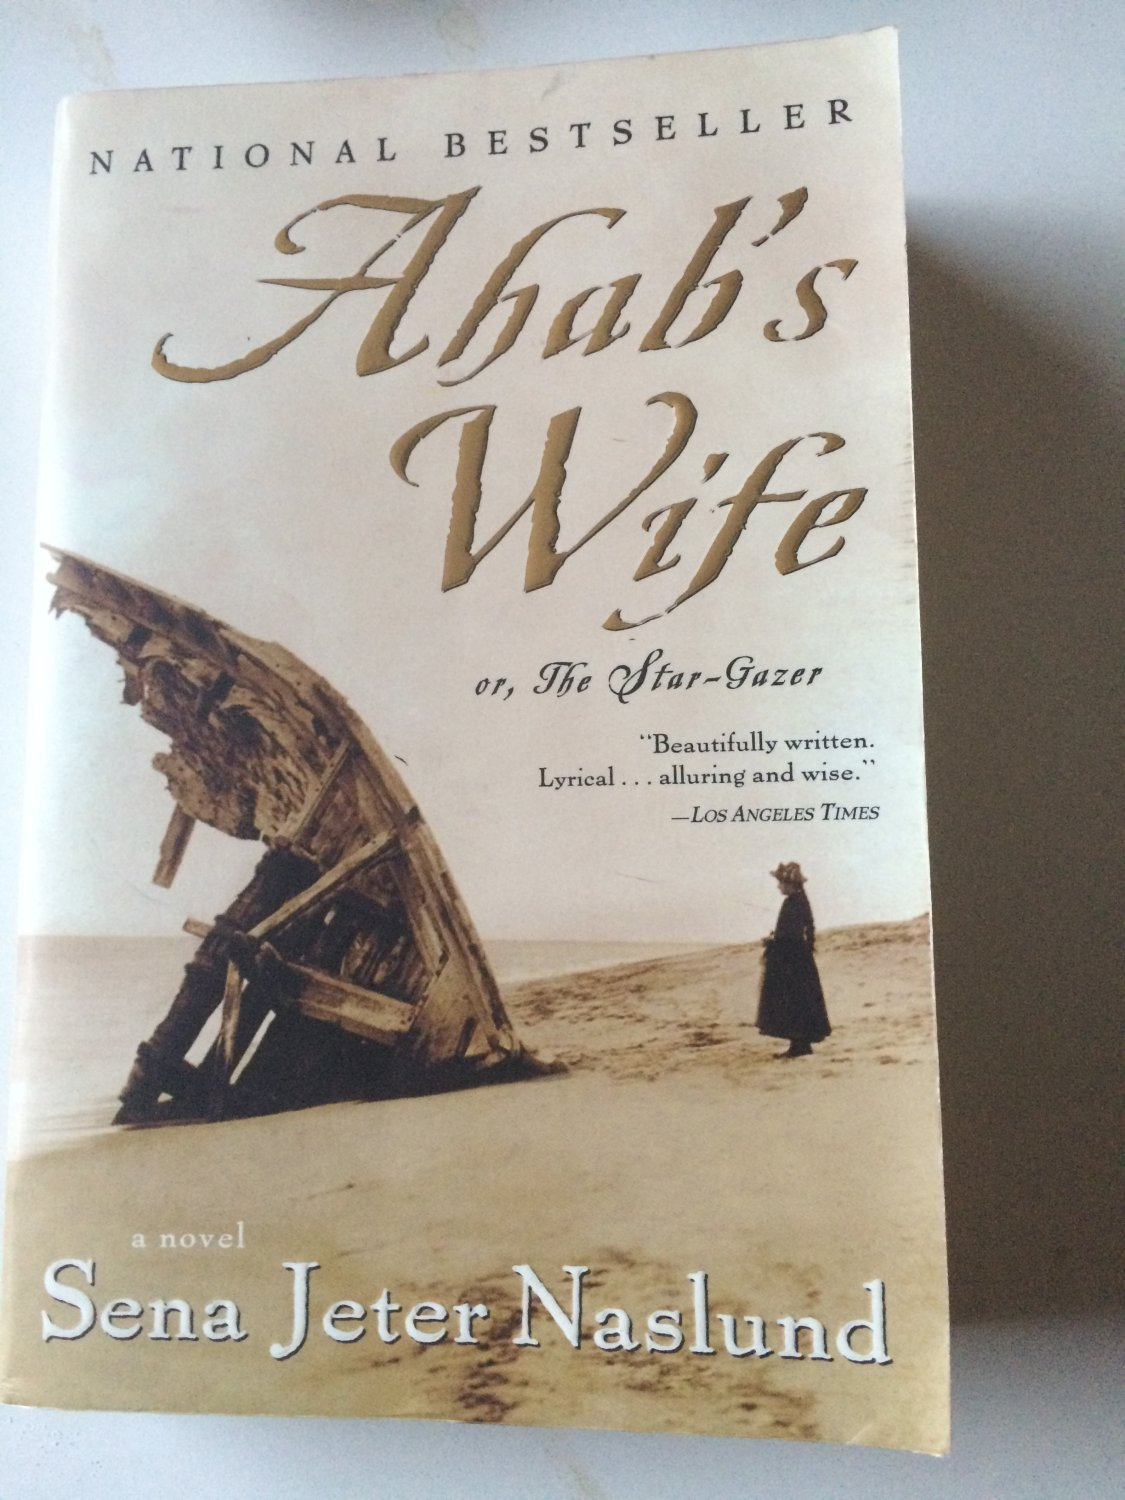 Ahab's Wife : Or, the Star-Gazer by Sena Jeter Naslund (2000, Paperback)